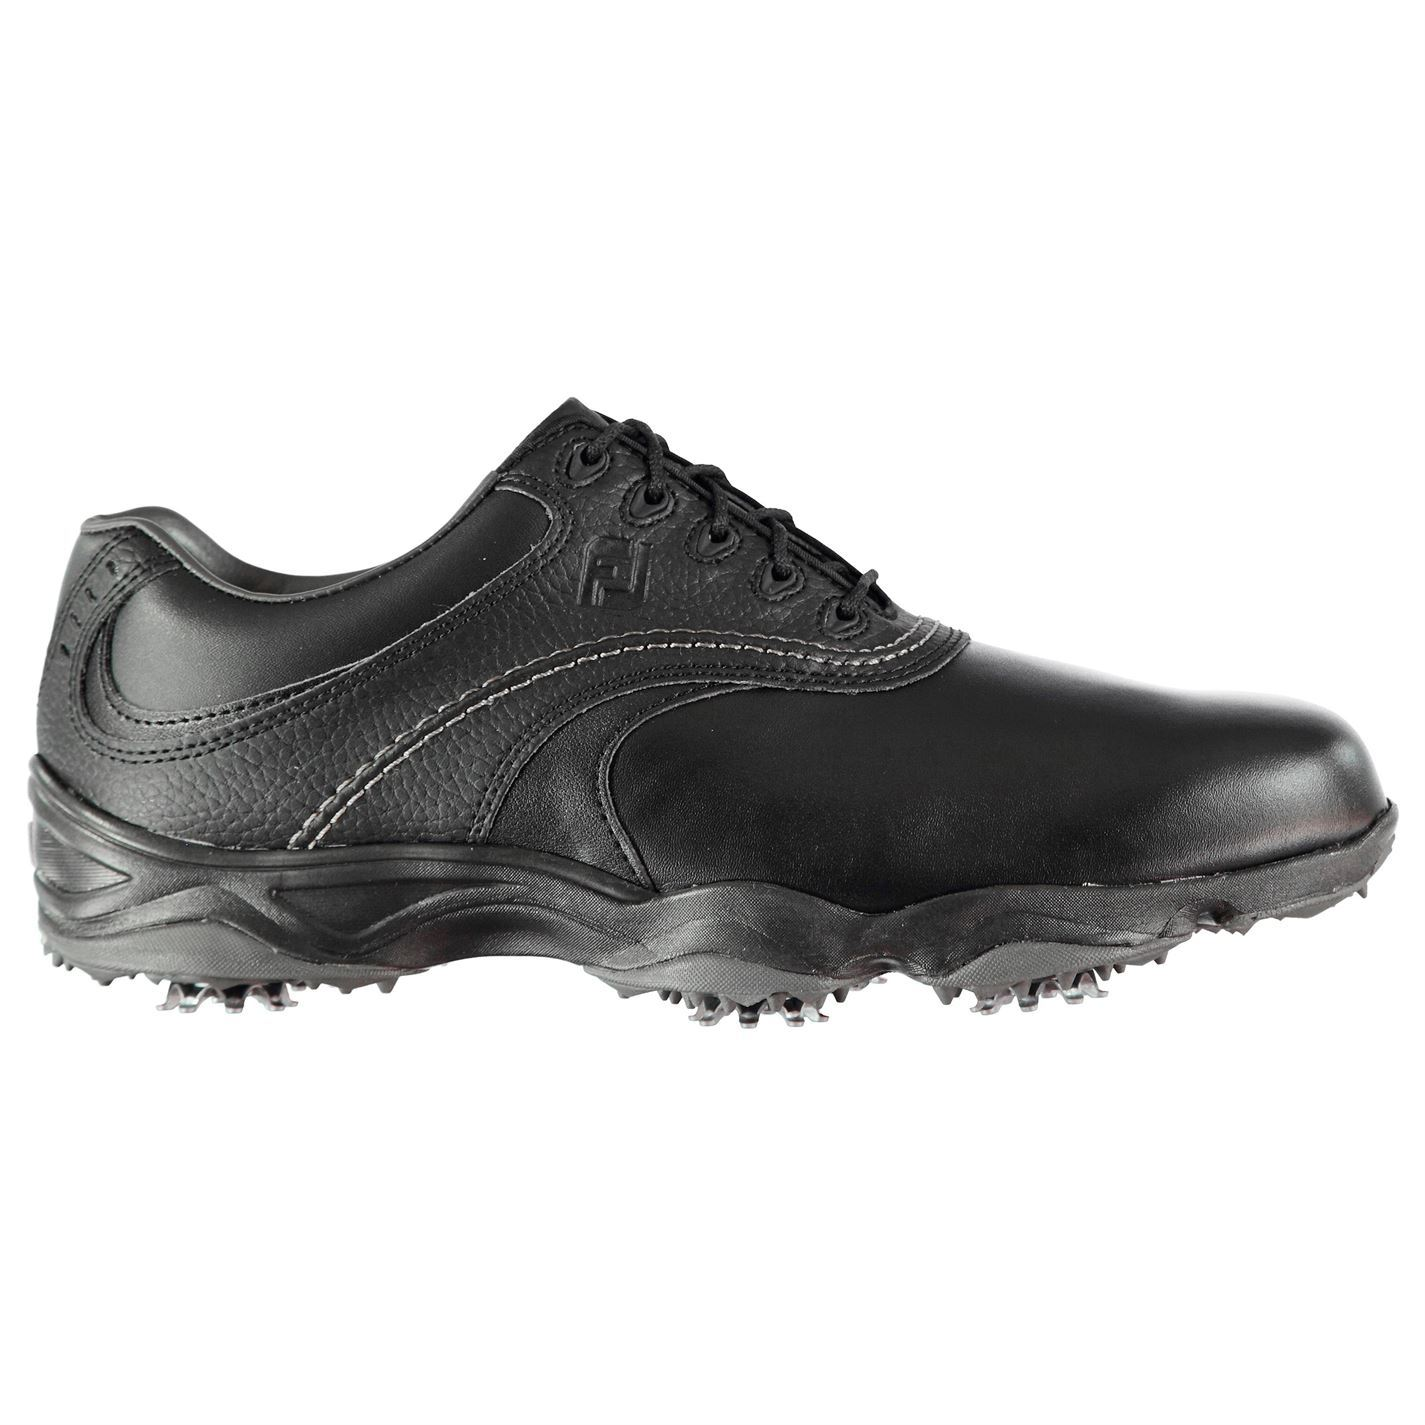 Footjoy-Originals-Golf-Shoes-Mens-Spikes-Footwear thumbnail 7